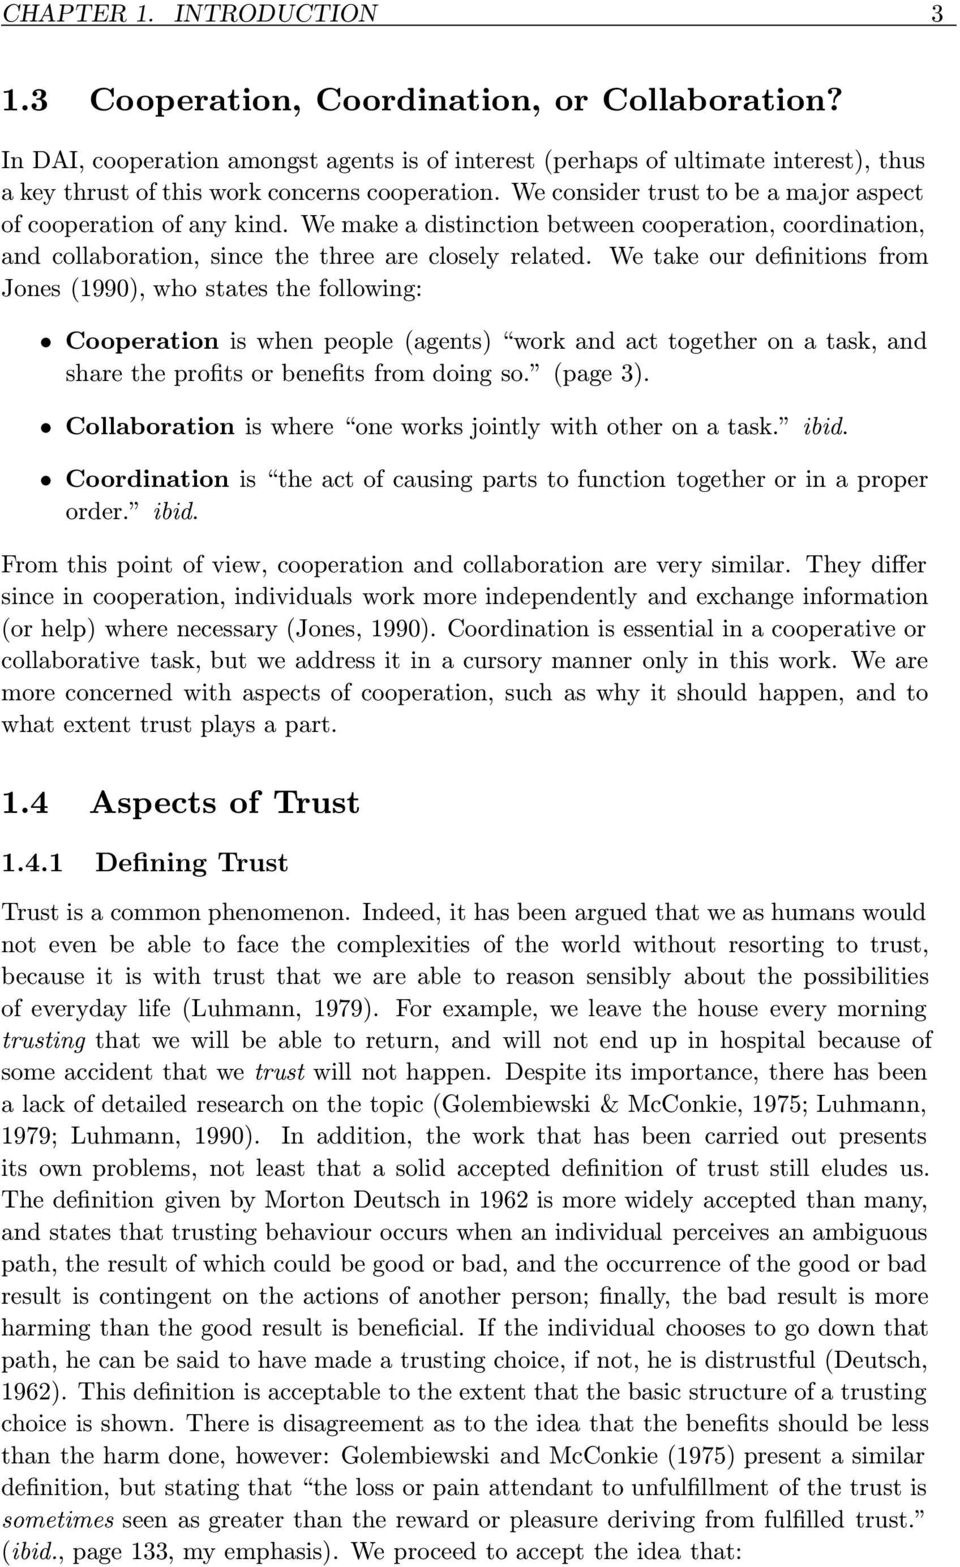 We consider trust to be a major aspect of cooperation of any kind. We make a distinction between cooperation, coordination, and collaboration, since the three are closely related.